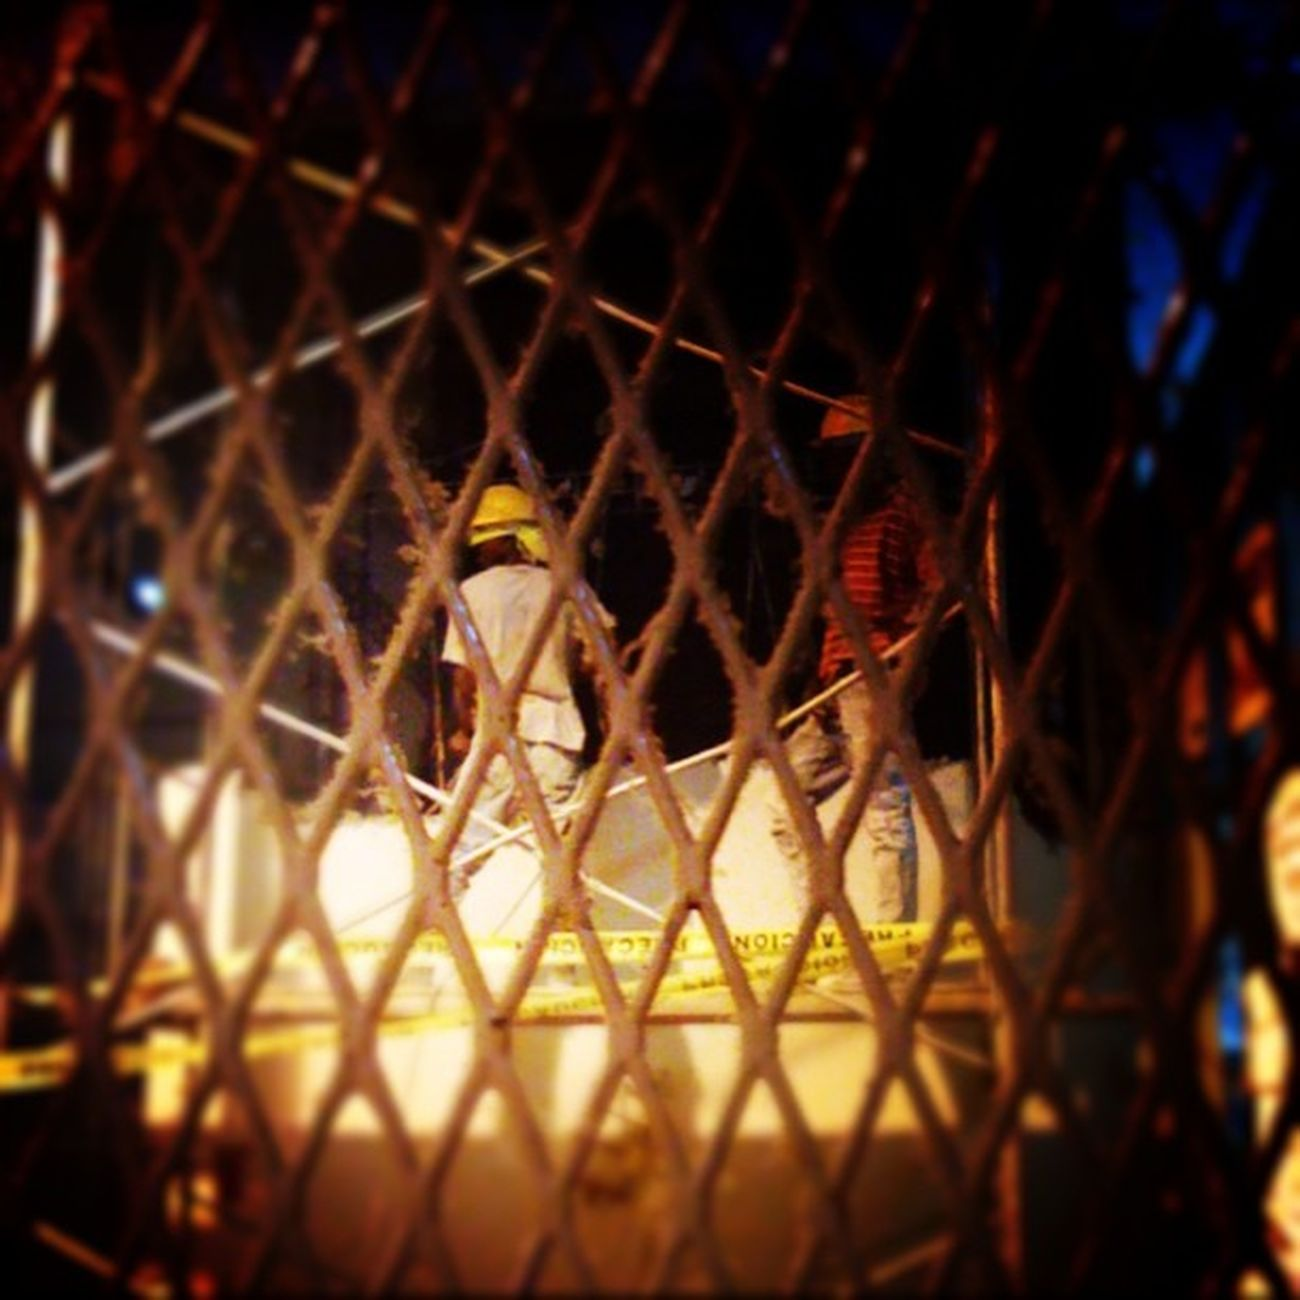 Nofilter Iphomegraphy Juatlight Workers fence work workers tiltshift